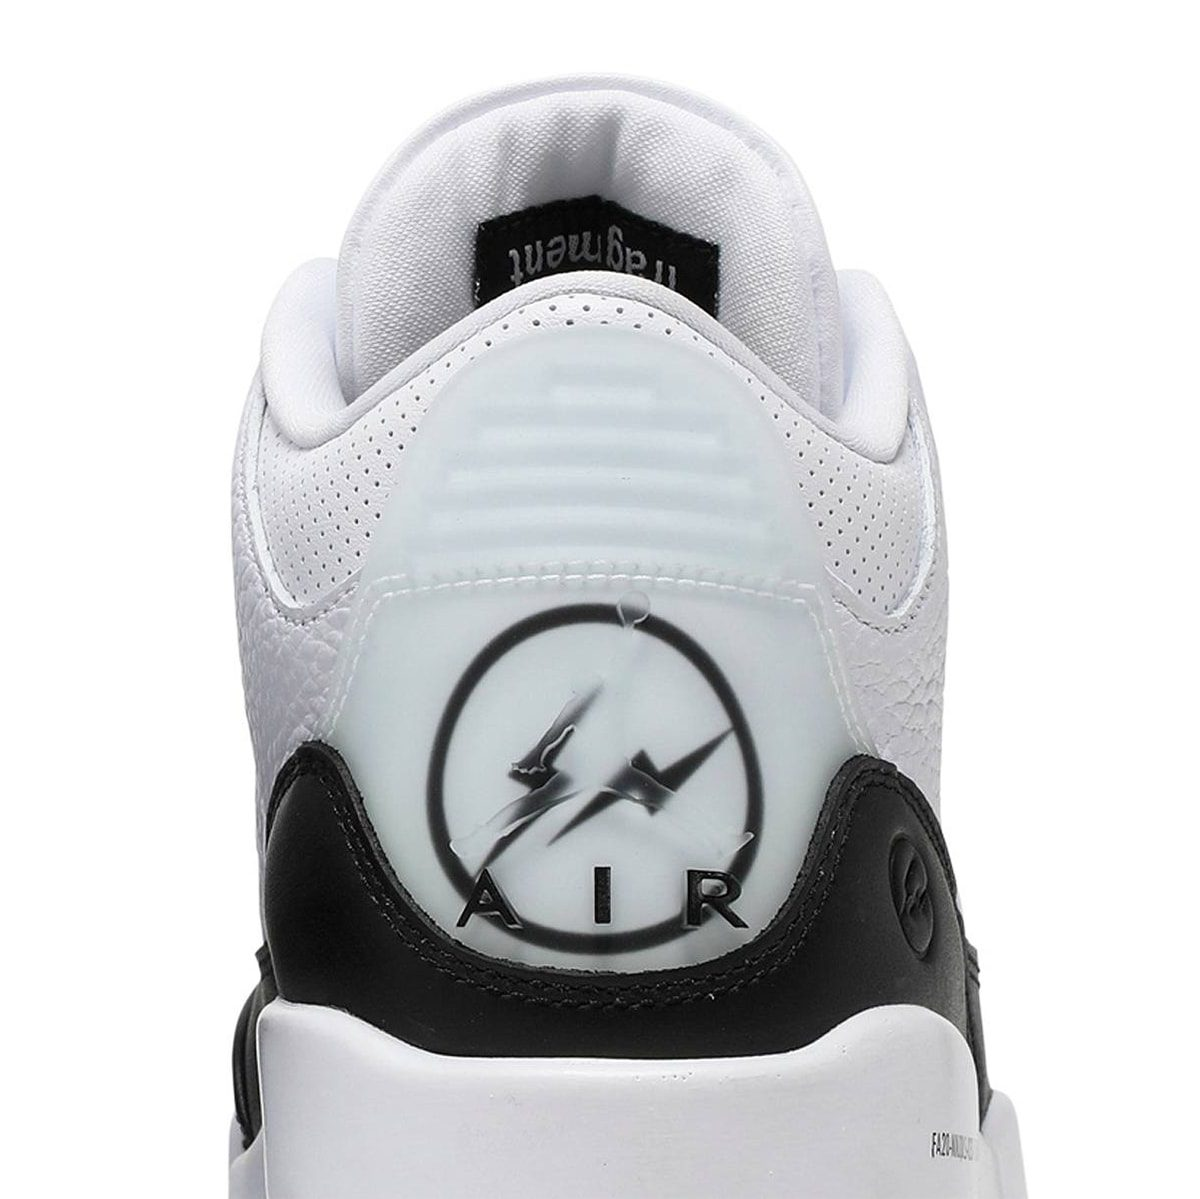 Where to Buy the Fragment x Air Jordan 3